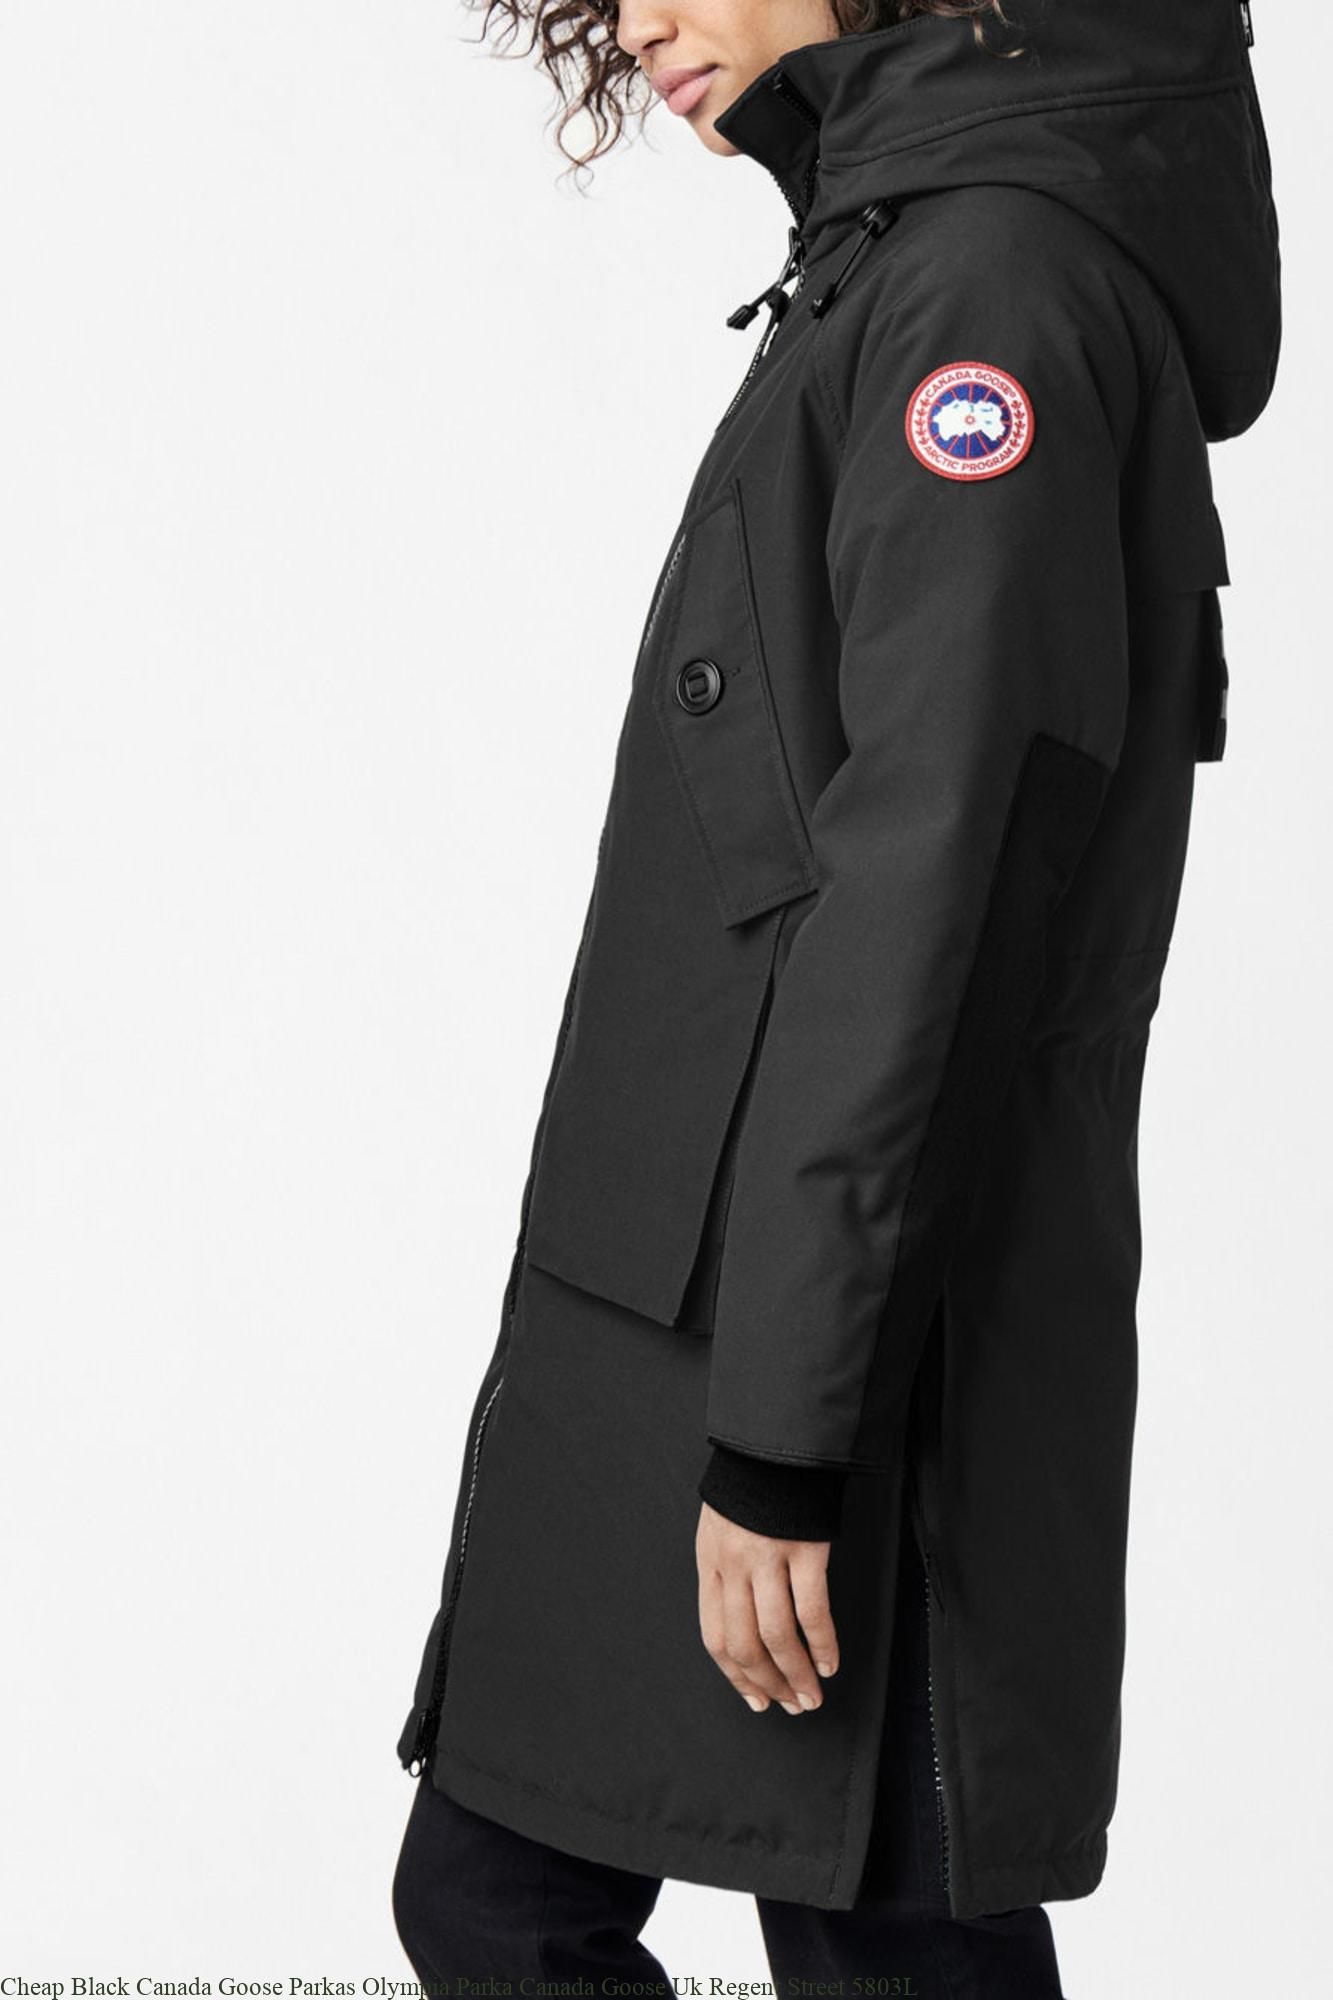 366dce6a8f4 Cheap Black Canada Goose Parkas Olympia Parka Canada Goose Uk Regent Street  5803L